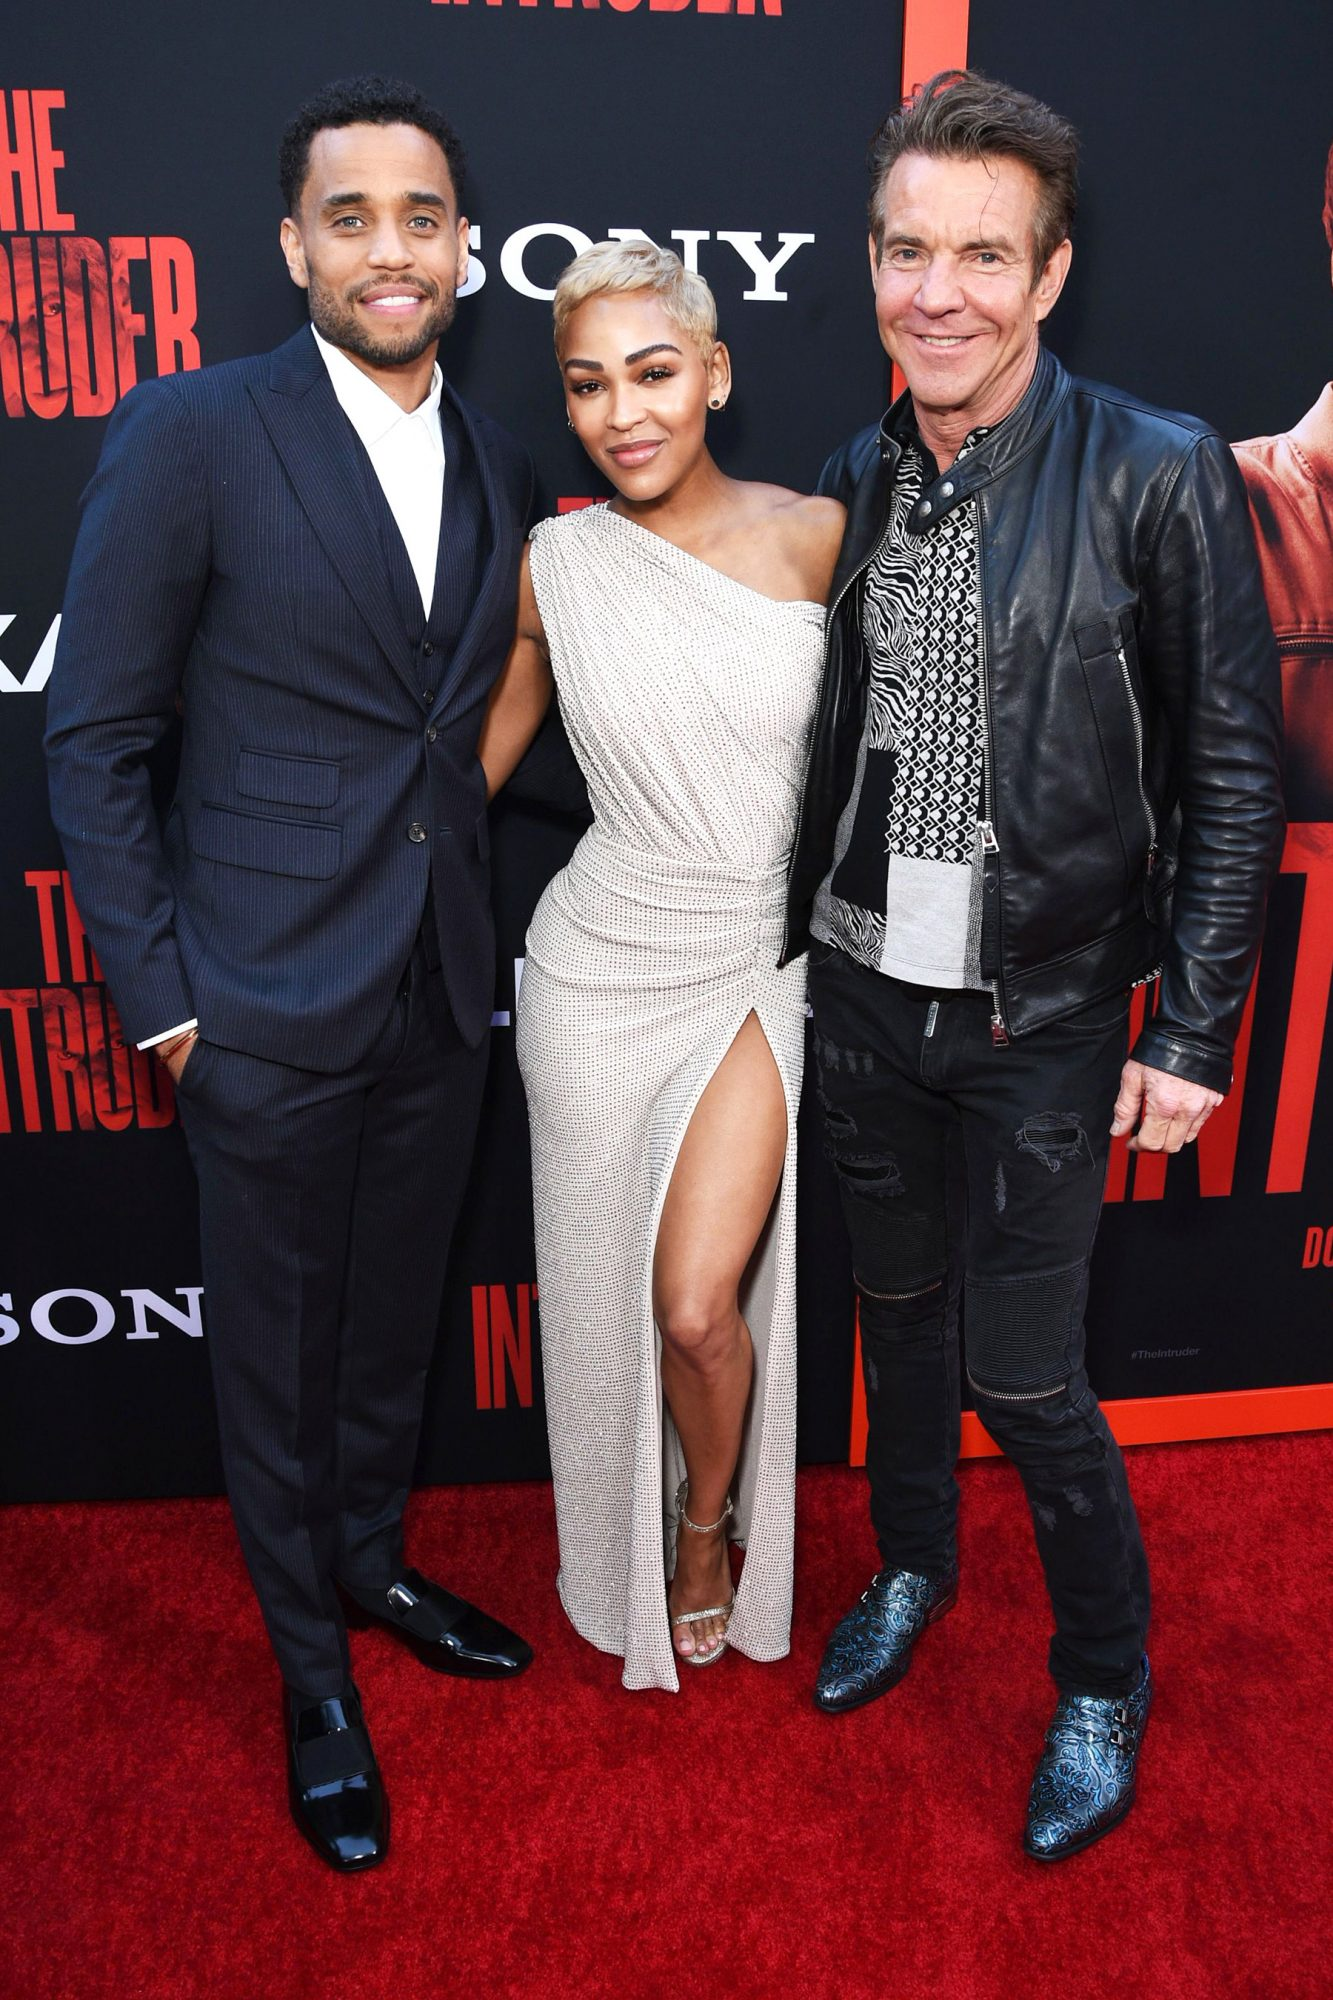 Michael Ealy, from left, Meagan Good and Dennis Quaid